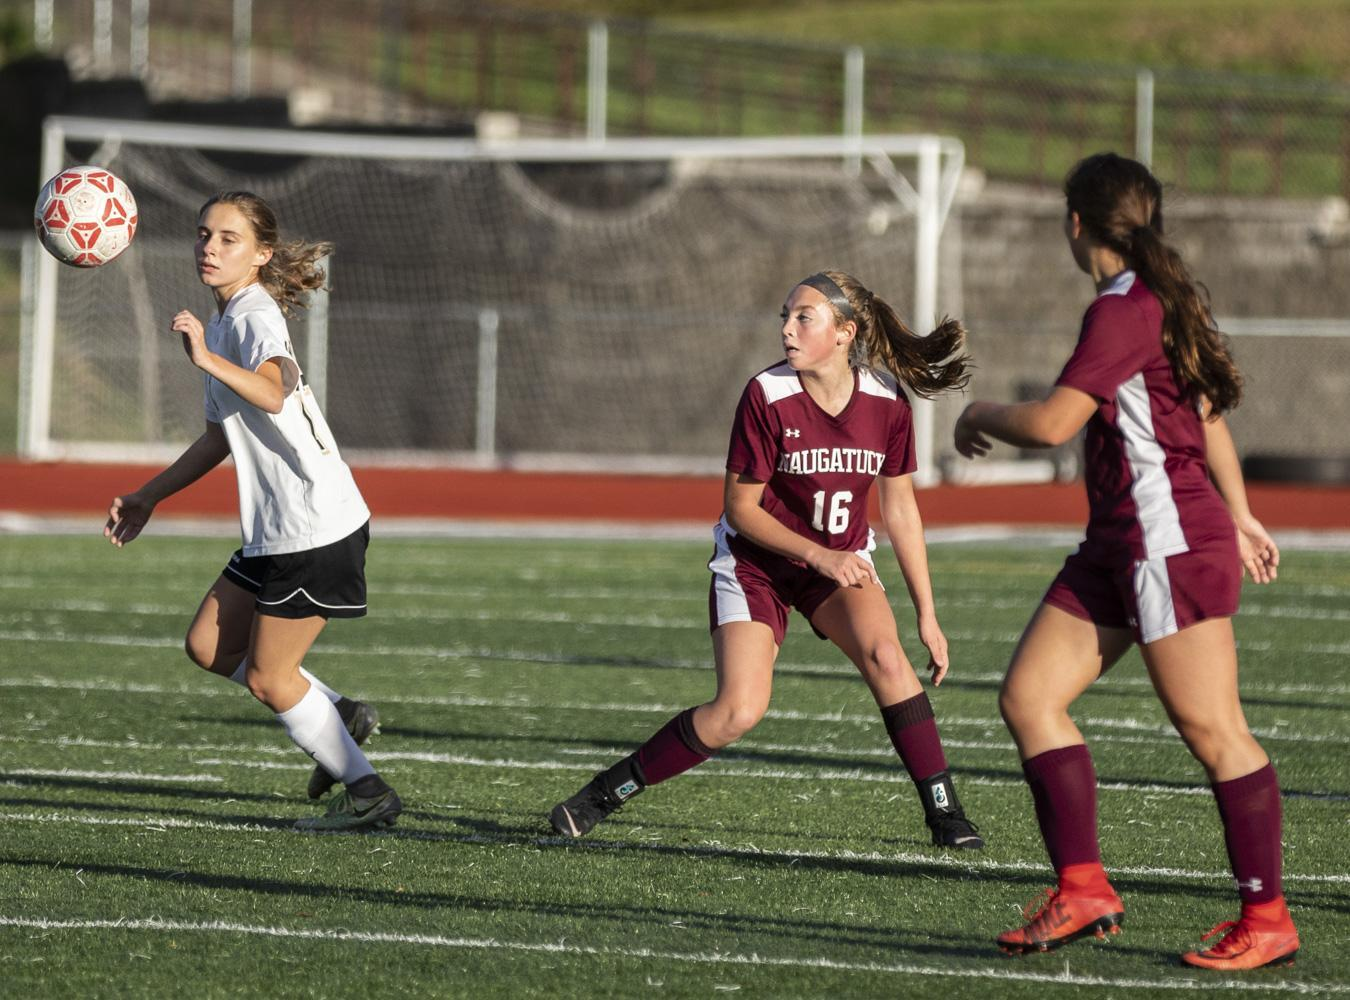 Naugatuck high school girls soccer players in game against Woodland at Veterans Field